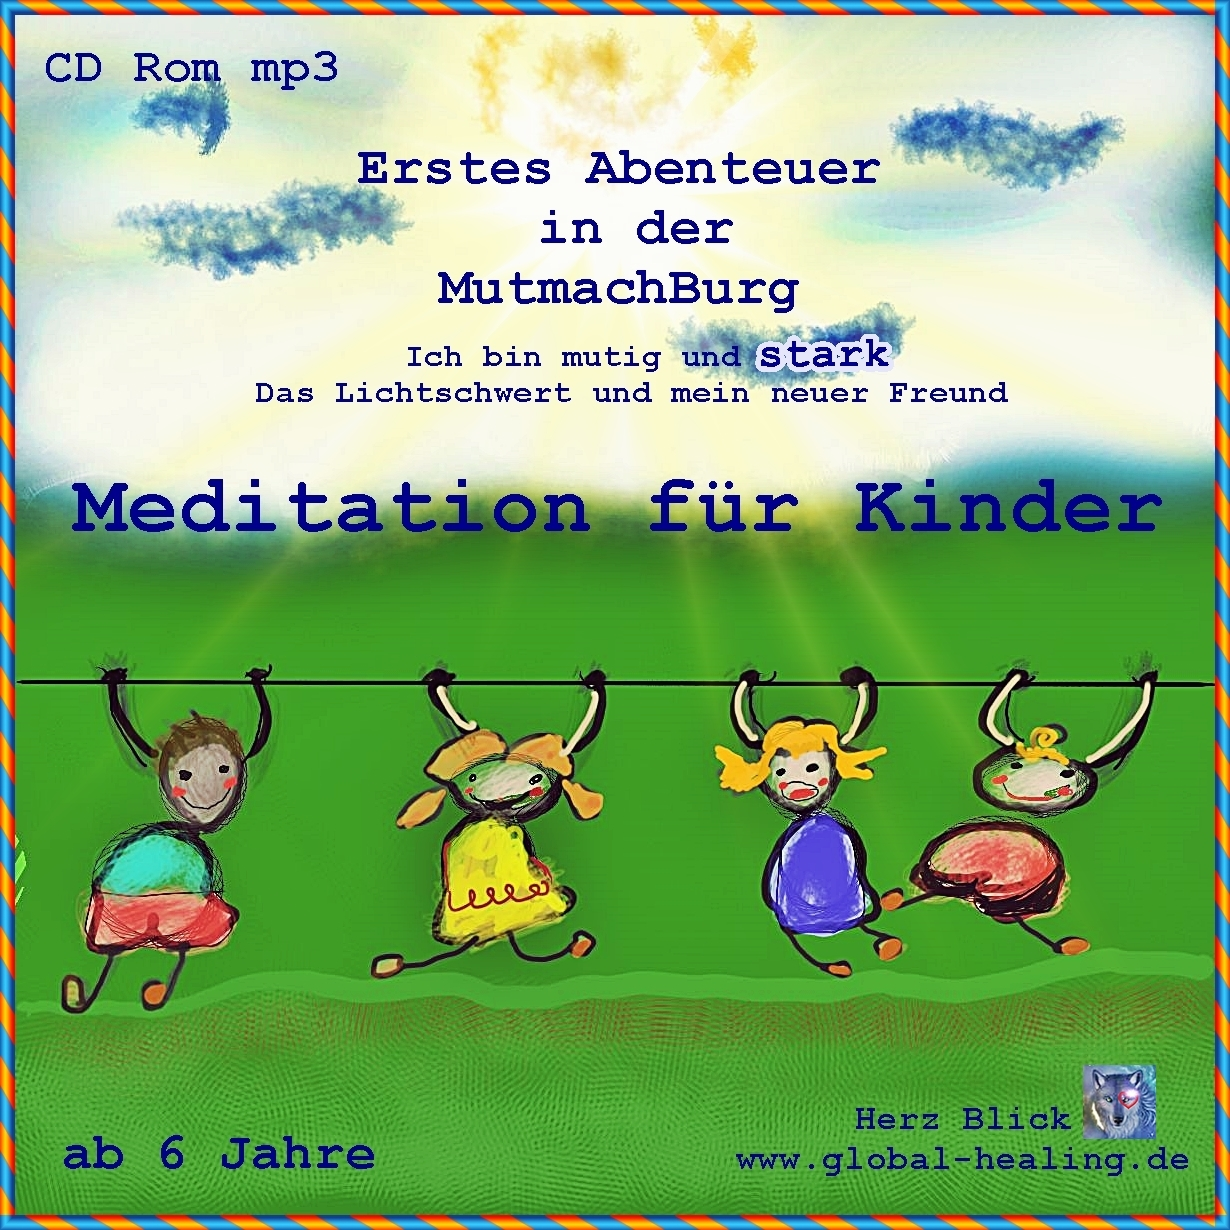 Meditation für Kinder CD mp3